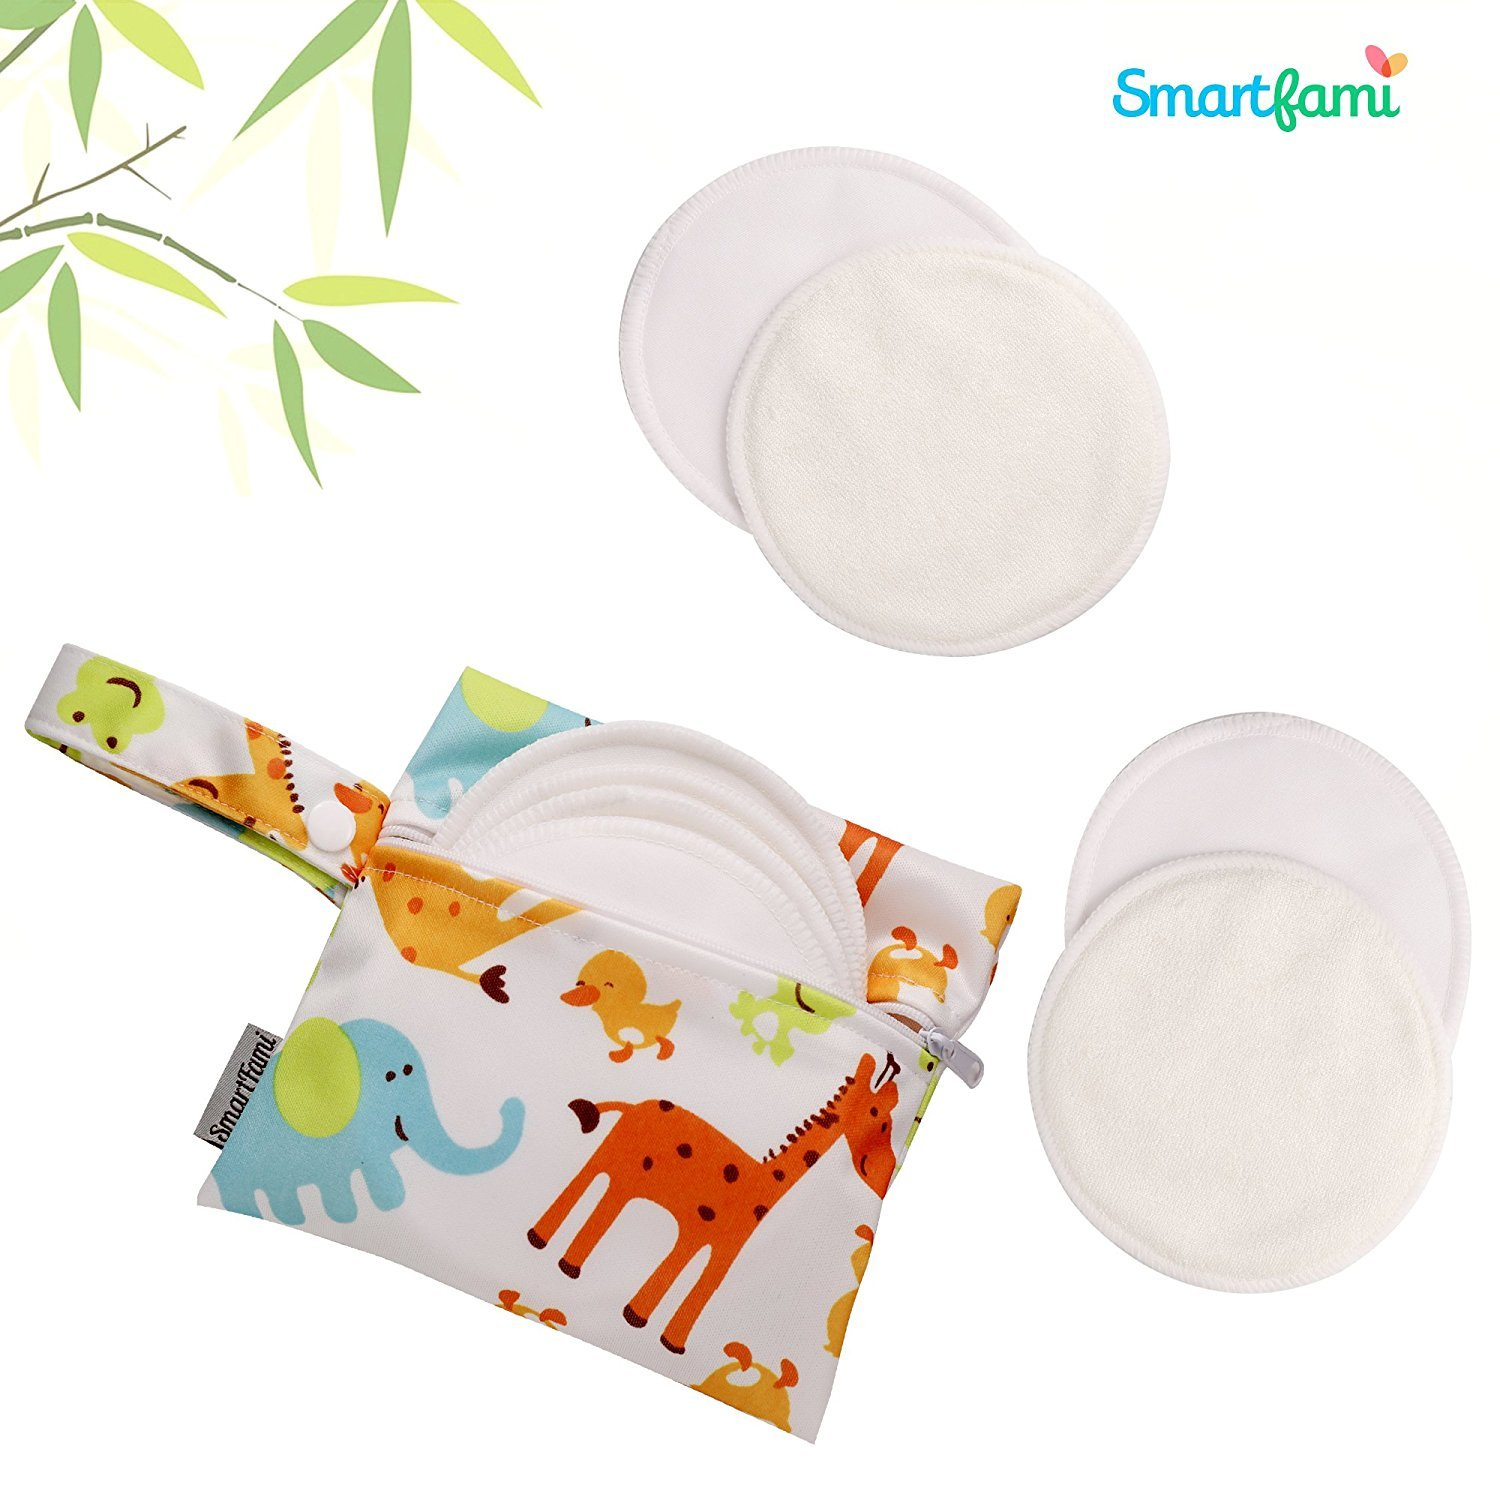 Best Washable Organic Bamboo Nursing Pads 8 Pack with Laundry and Cloth Bag by SmartFami,Reusable Breast Pads,Ultra Soft,Waterproof,Leakproof Bra Pads,Absorbent,Hypoallergenic,Breastfeeding Pads